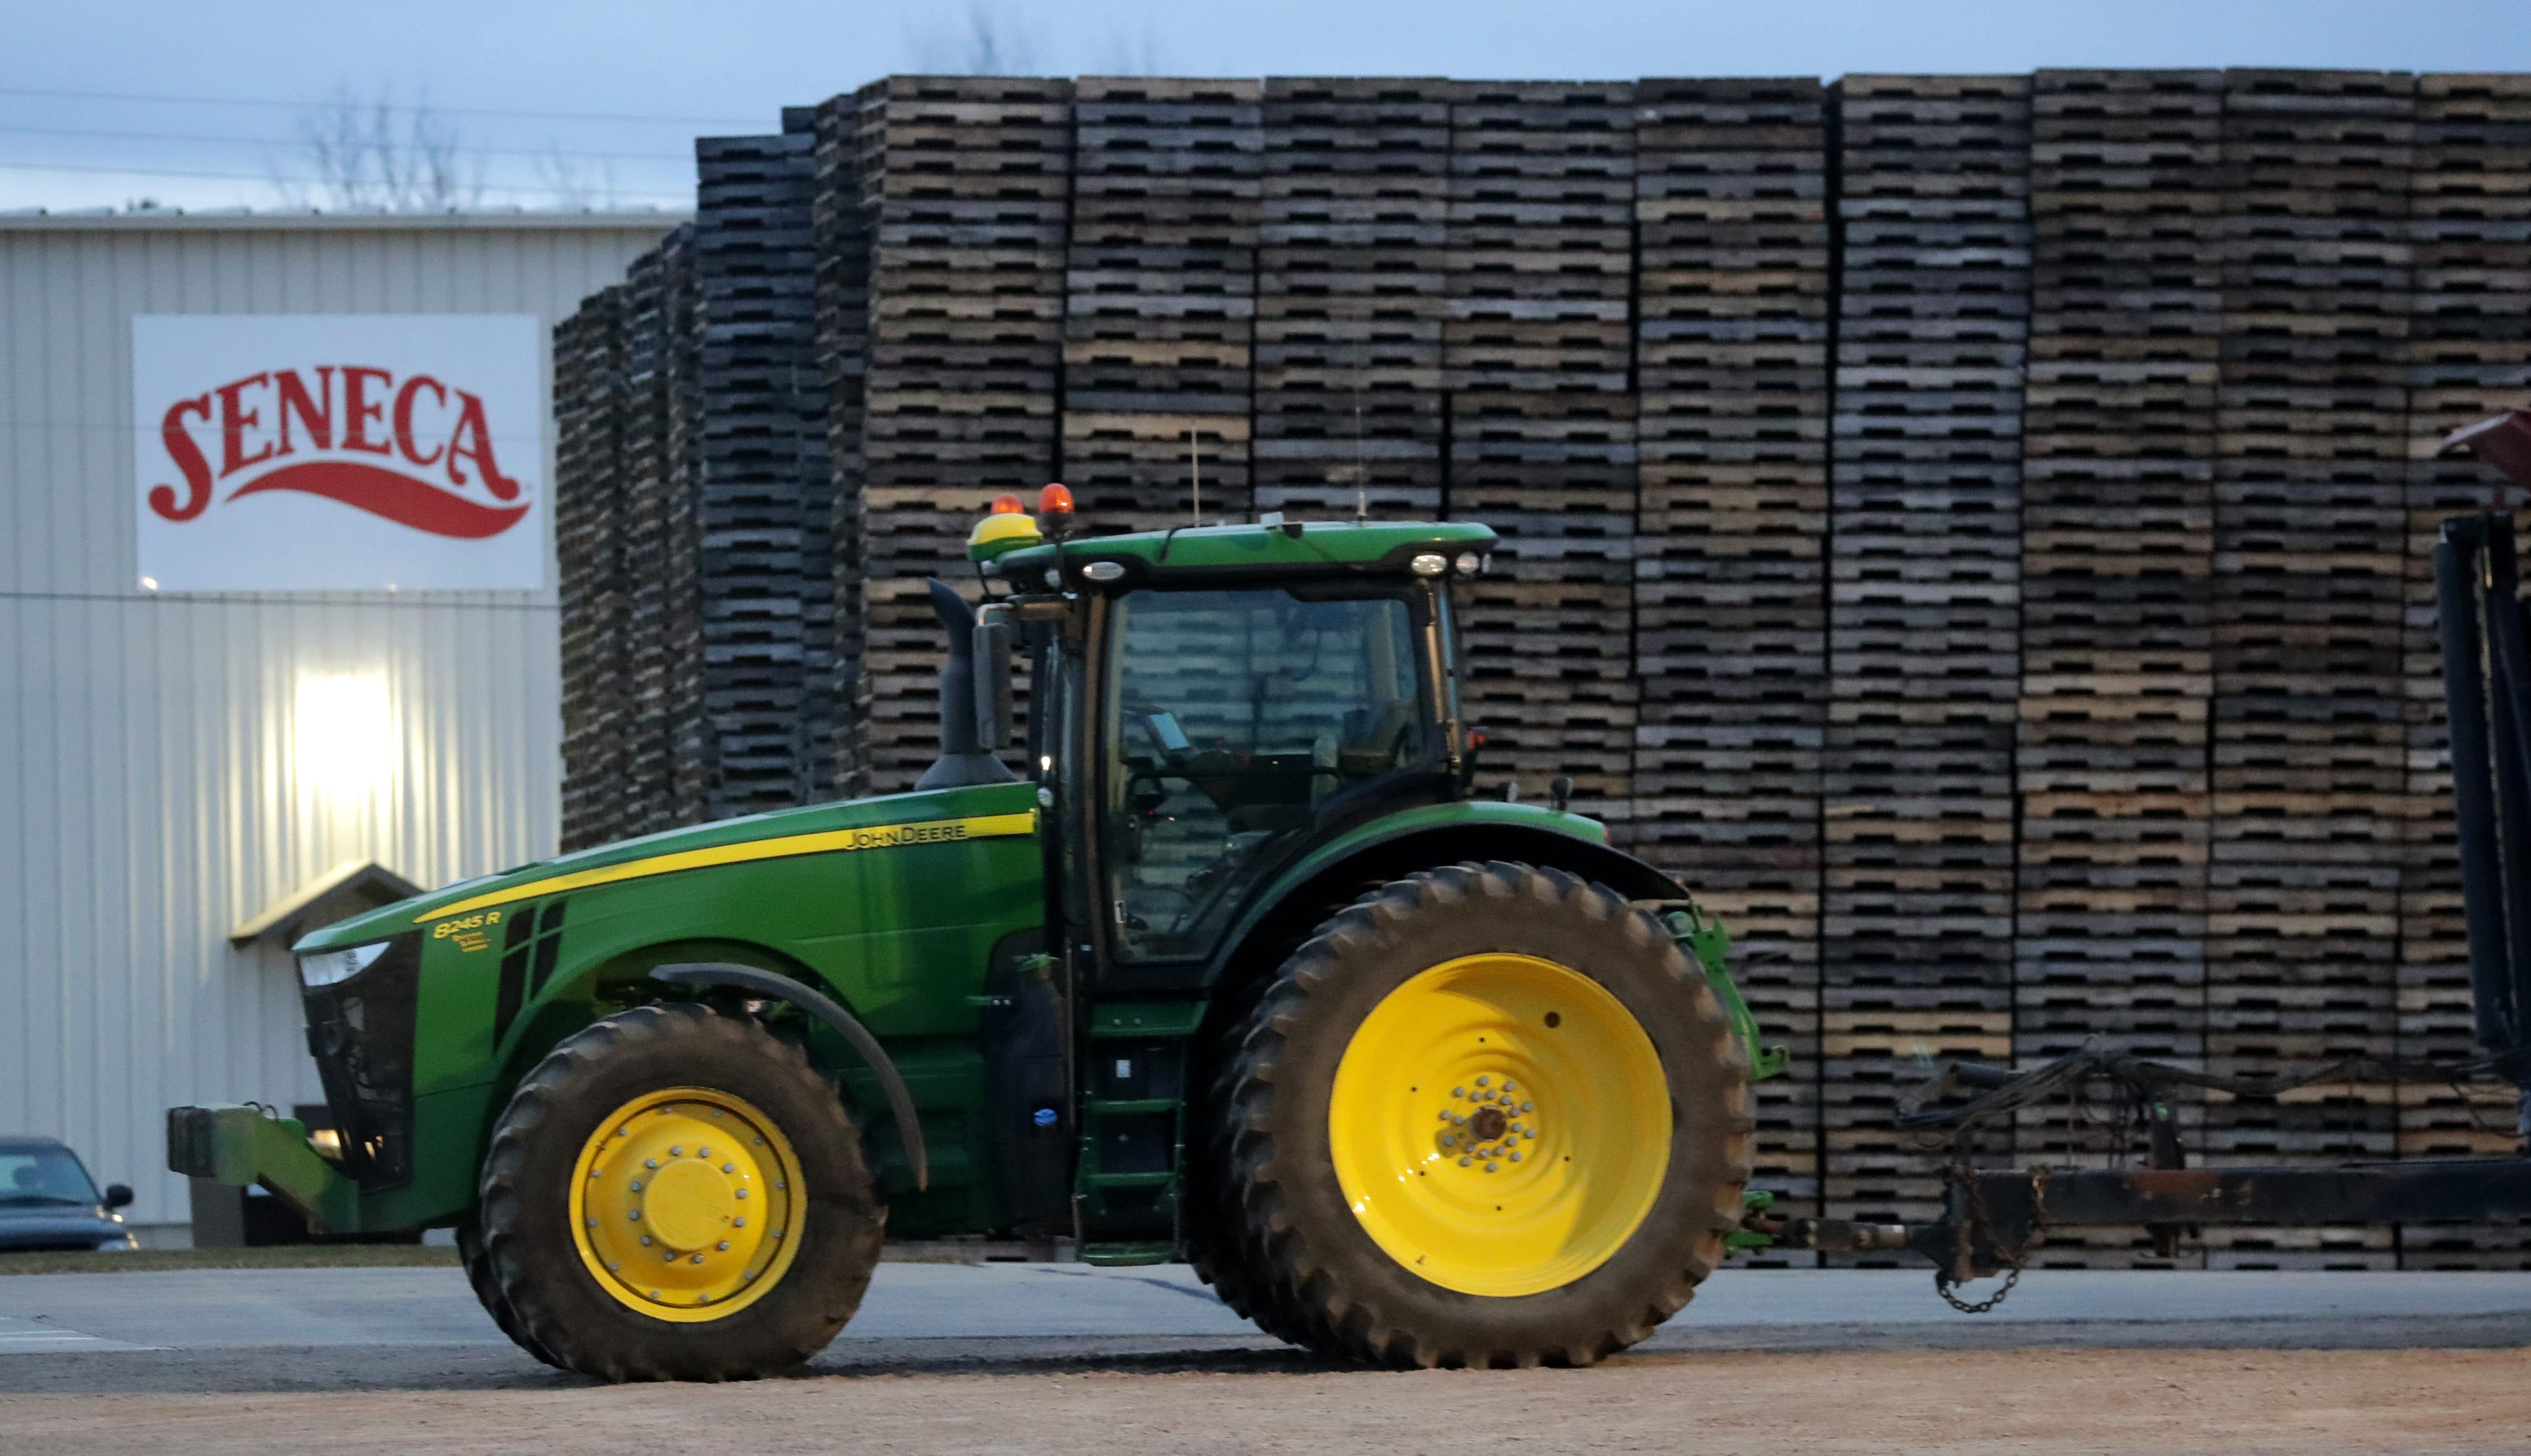 A tractor is parked in front of stacked pallets at the Seneca food plant in Gillett, Wisconsin.